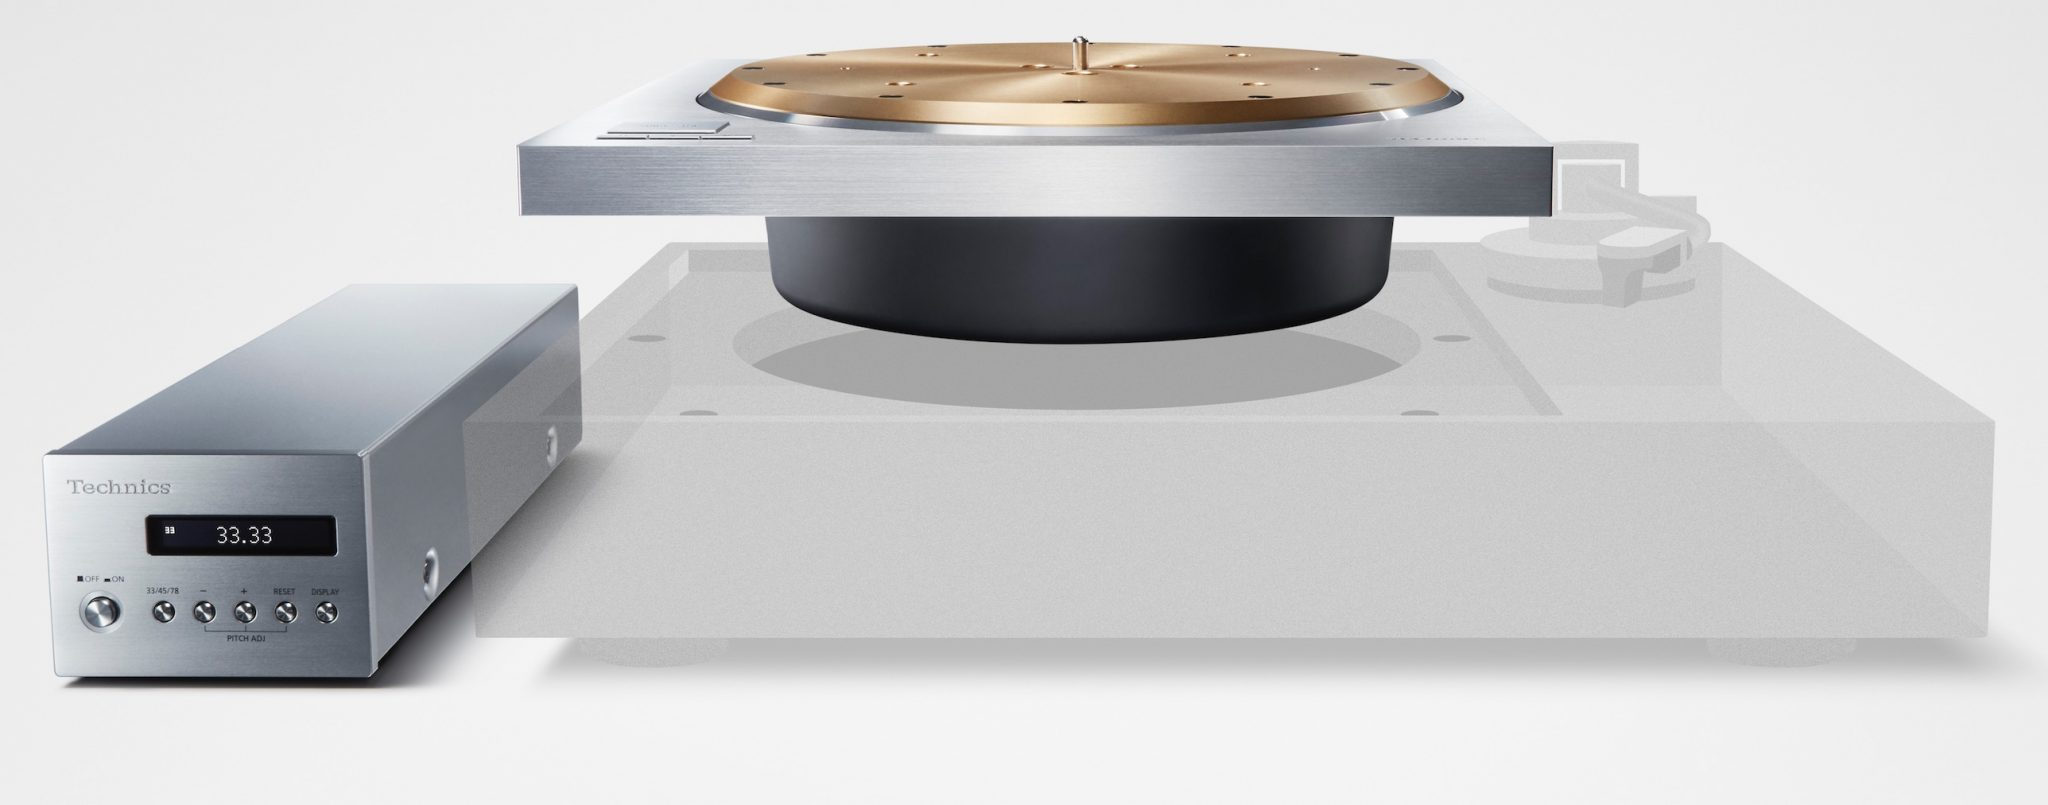 Technics SP-10R and SL-1000R Direct Drive Turntables